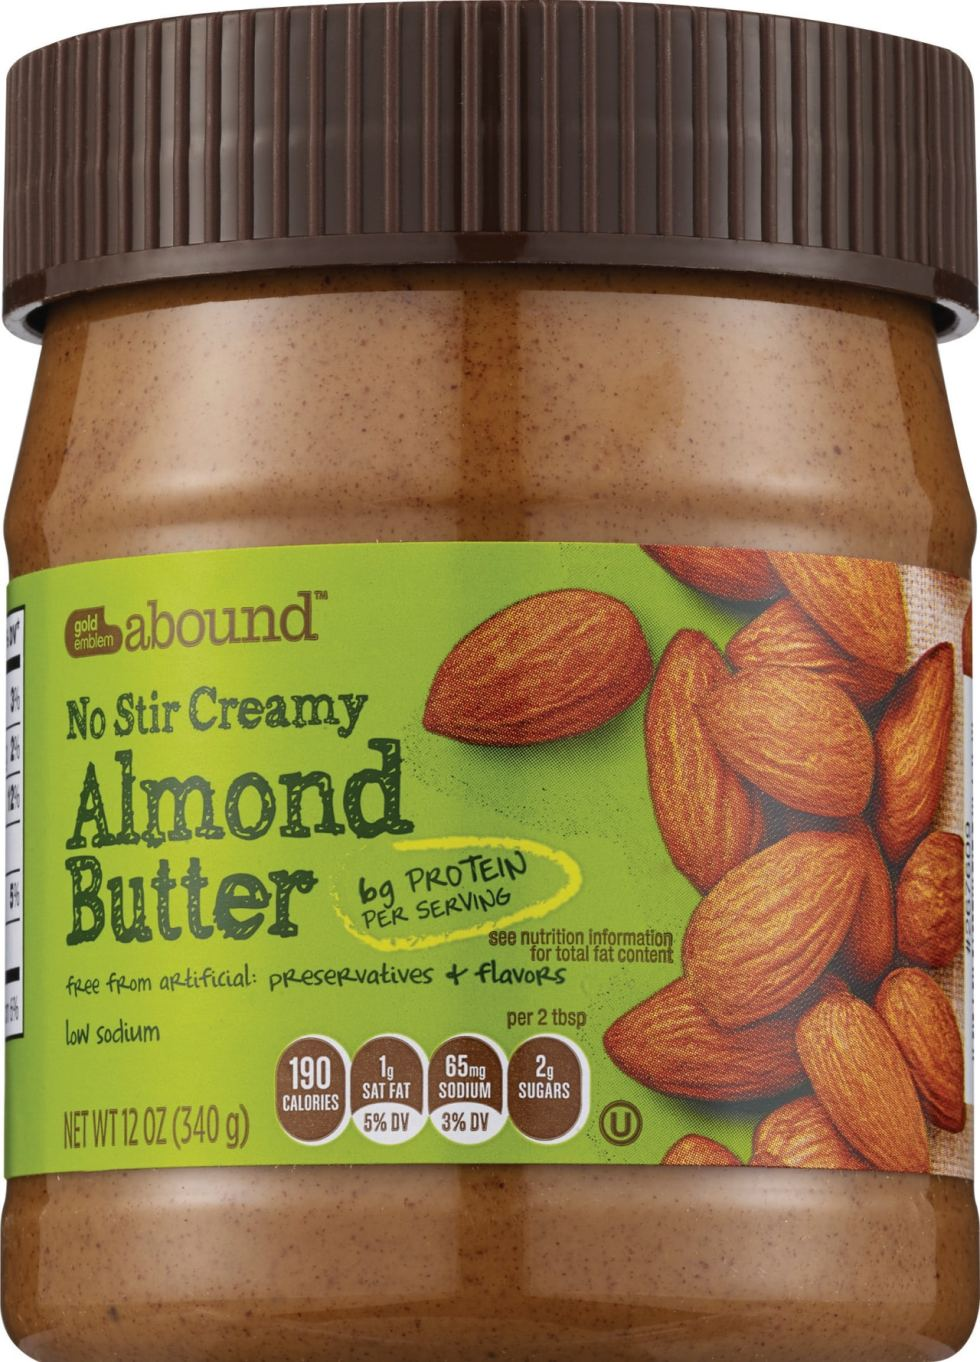 gea-almond-butter